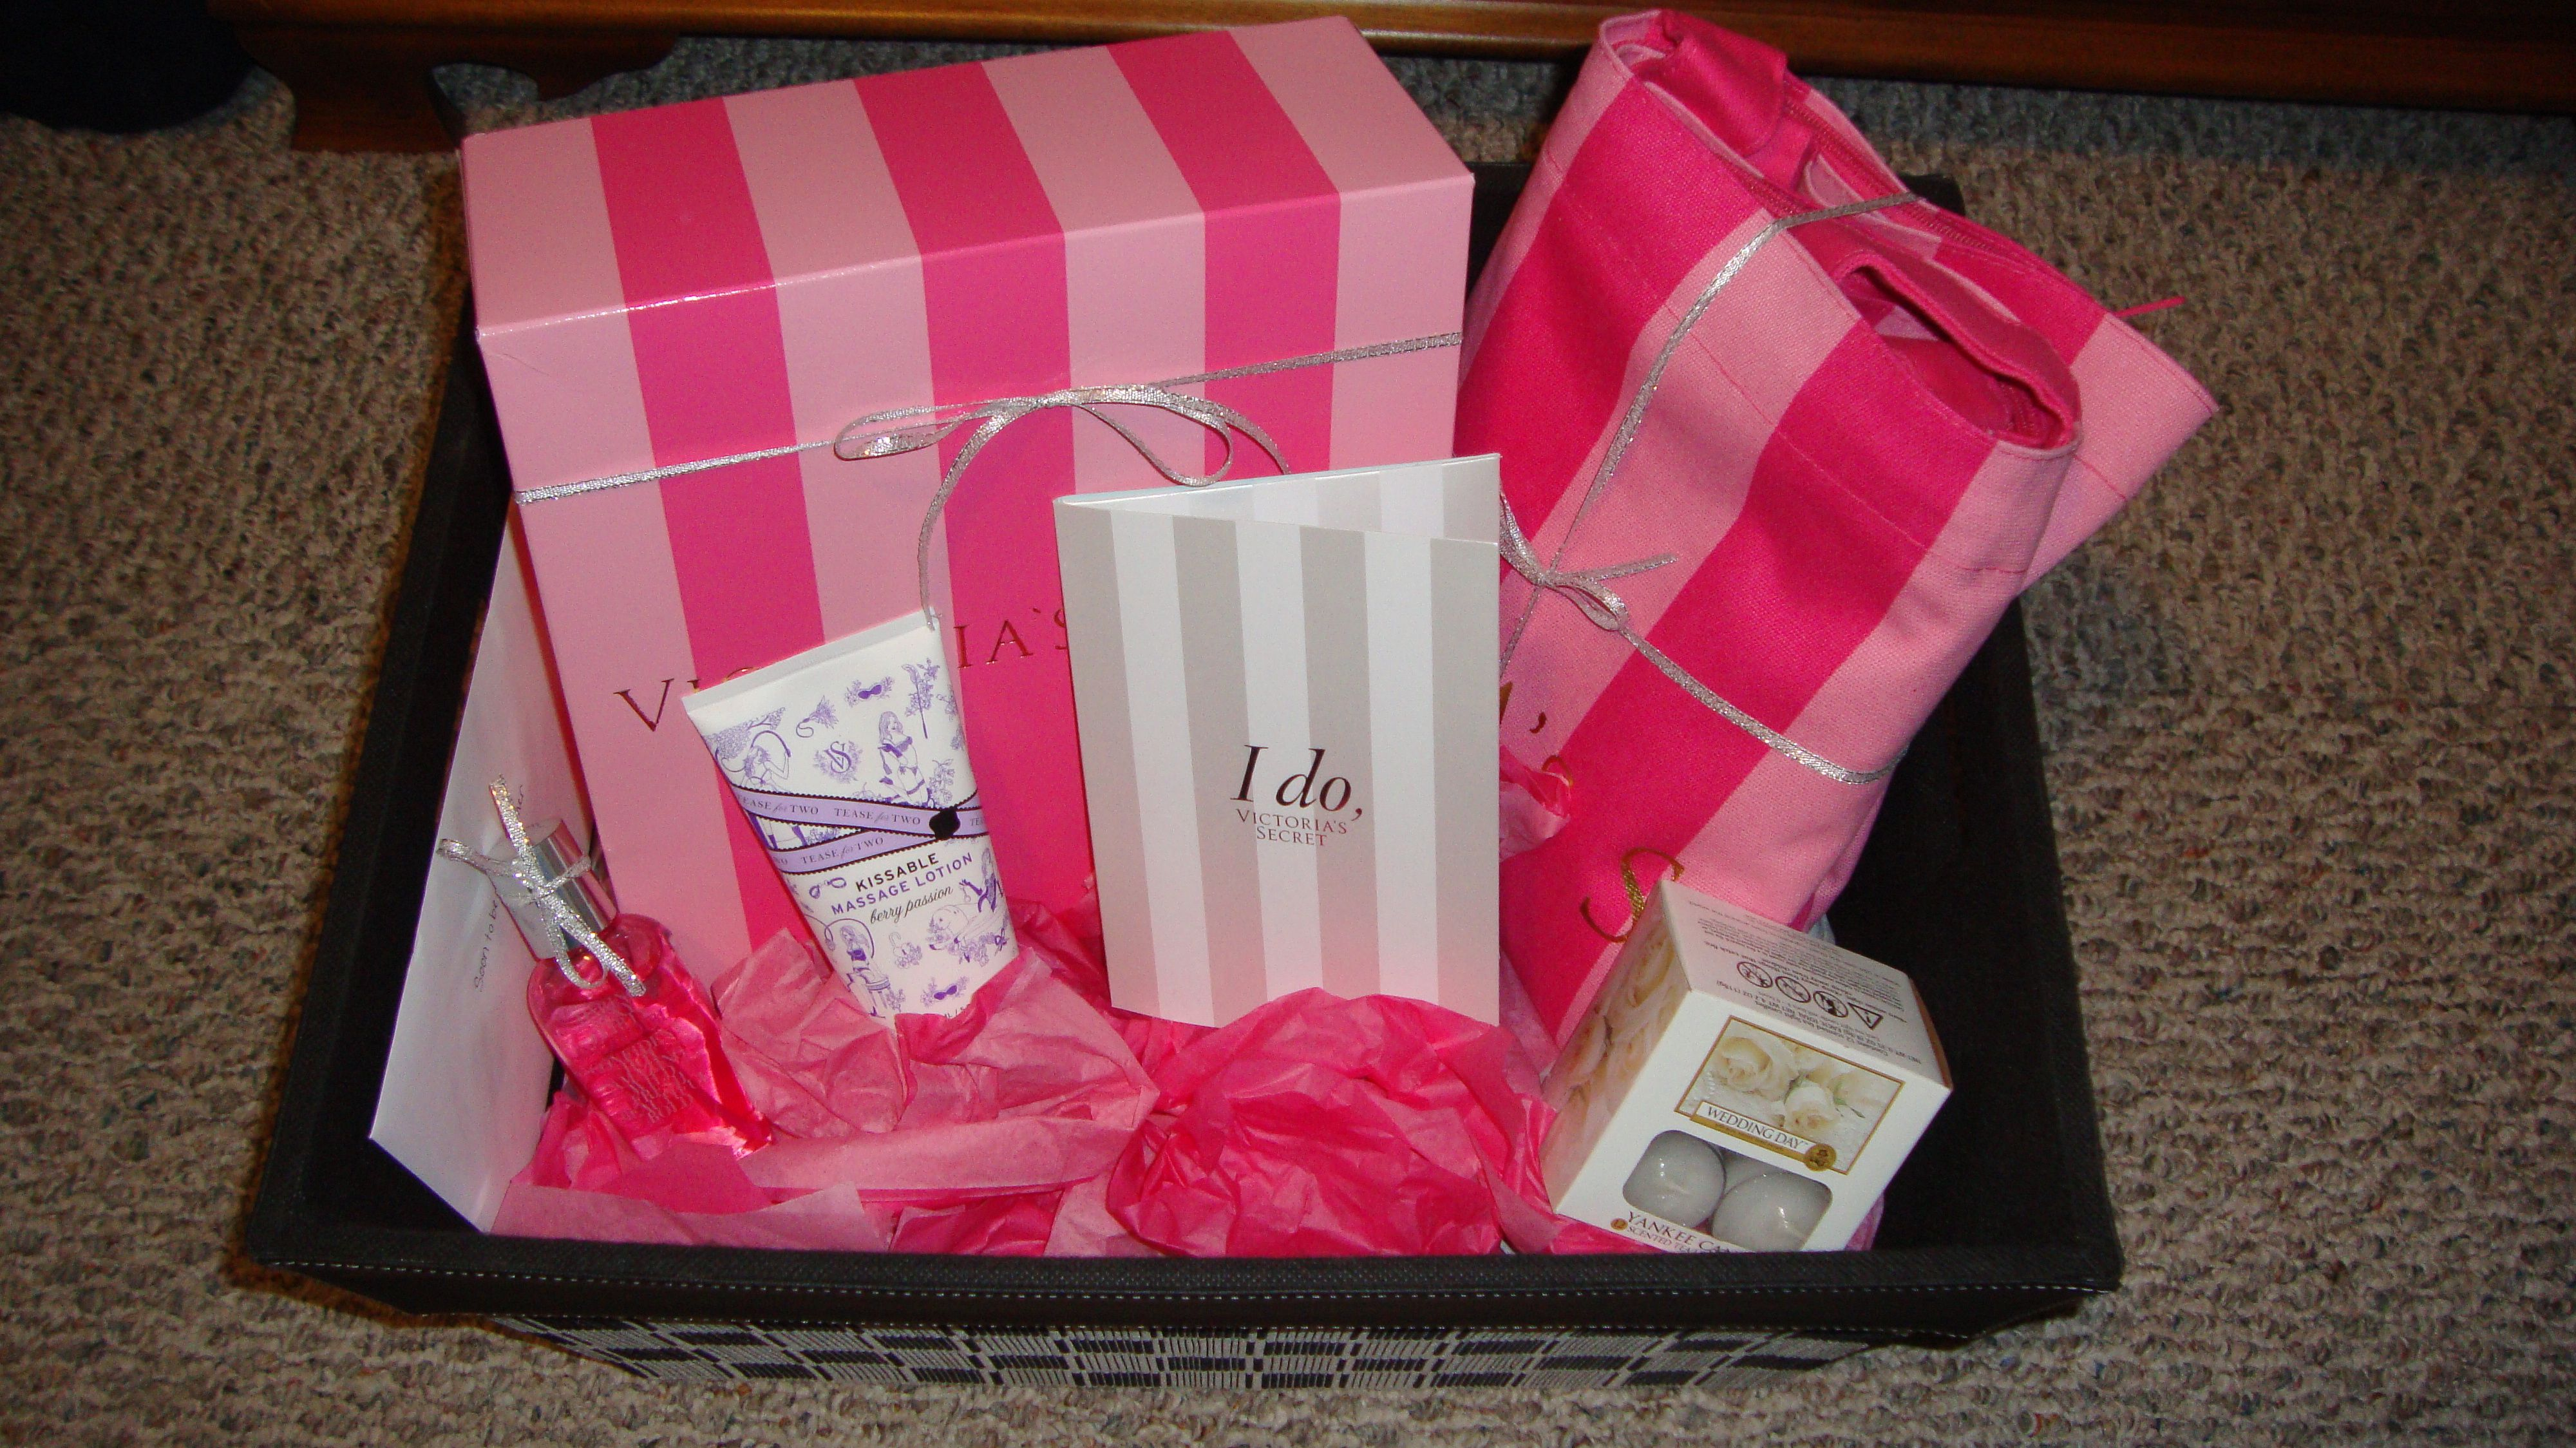 Wedding Gift Presents: Bridal Shower Gift Idea! Inside The Victoria Secret Box